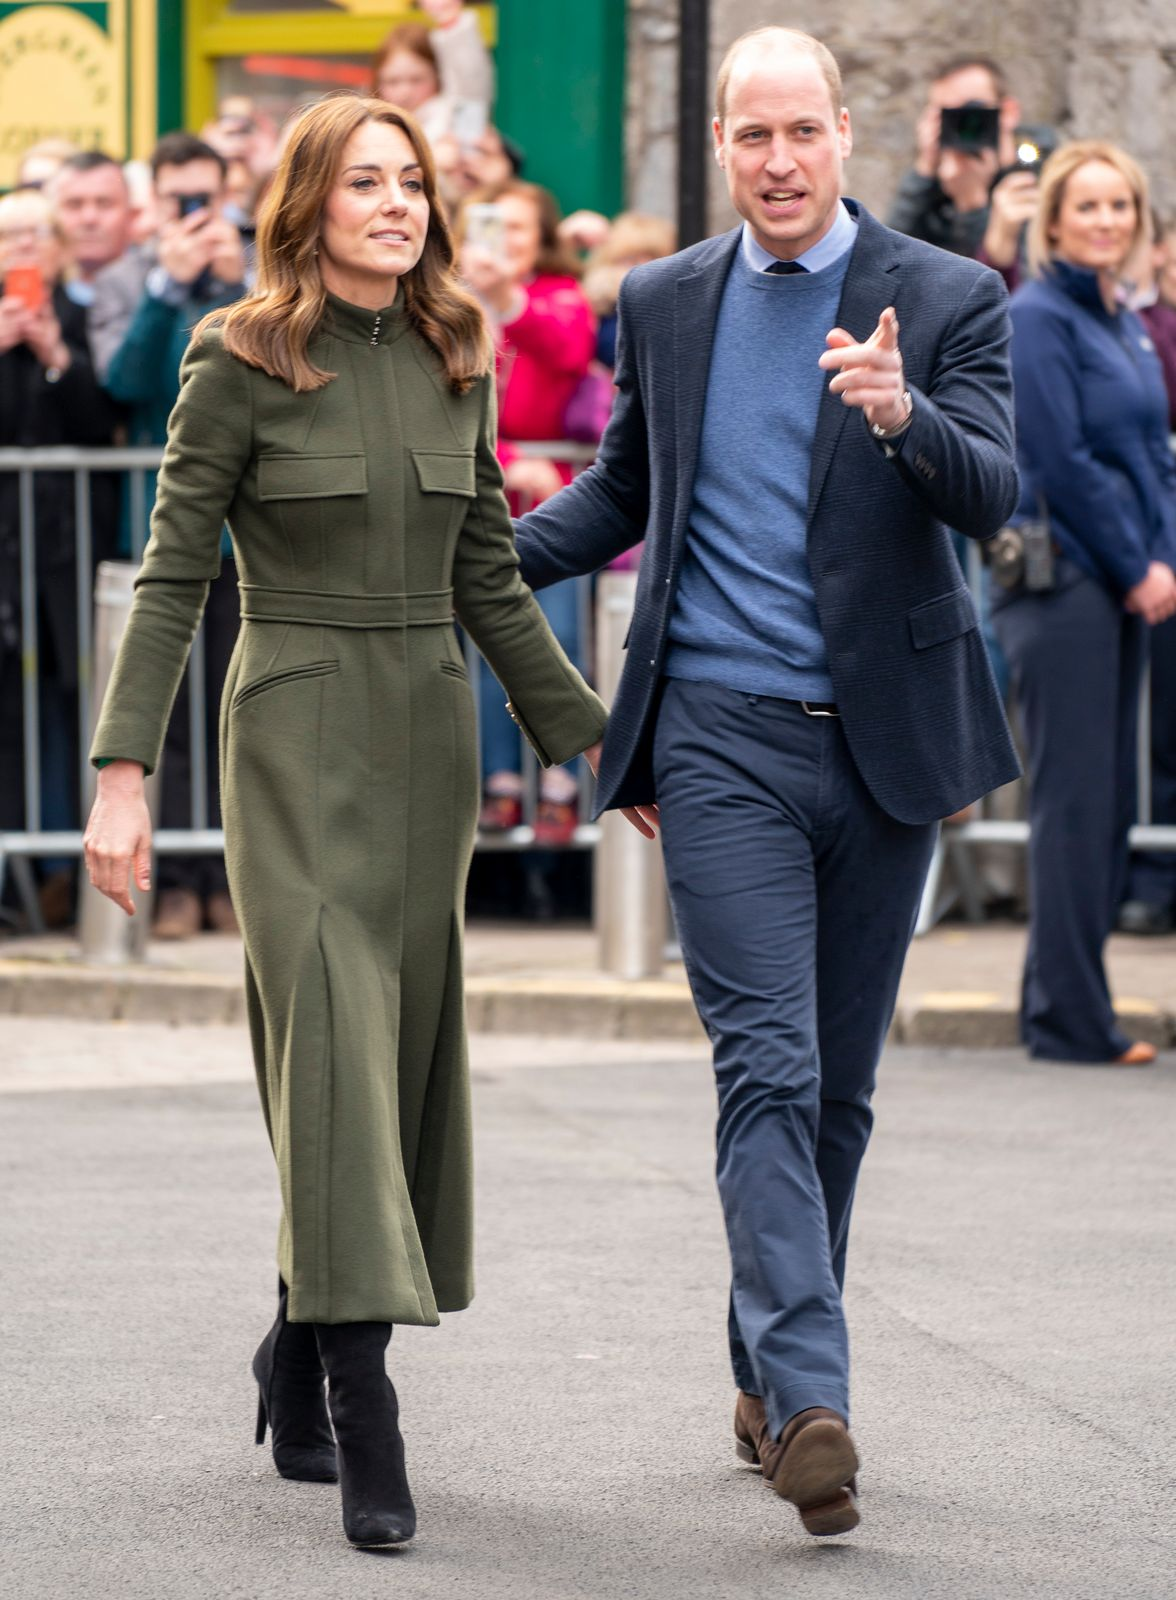 Prince William, Duke of Cambridge and Catherine, Duchess of Cambridge meet members of the public gathered on King Street during day three of their visit to Ireland on March 5, 2020 in Galway, Ireland.| Photo: Getty Images